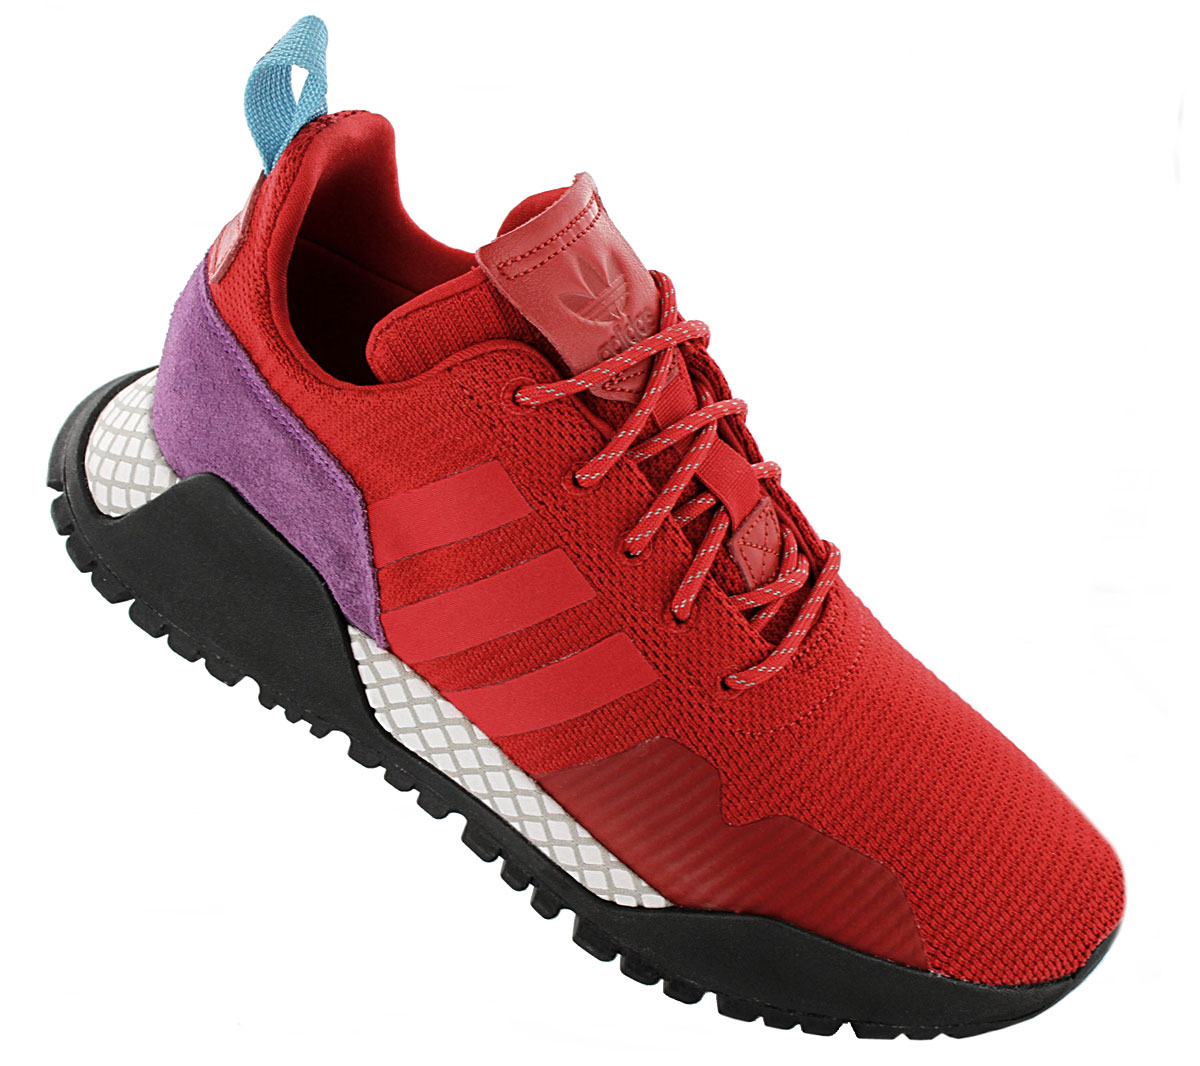 Details about Adidas Originals F 1.4 Pk Primeknit Sneaker Red BZ0614 Sneakers New